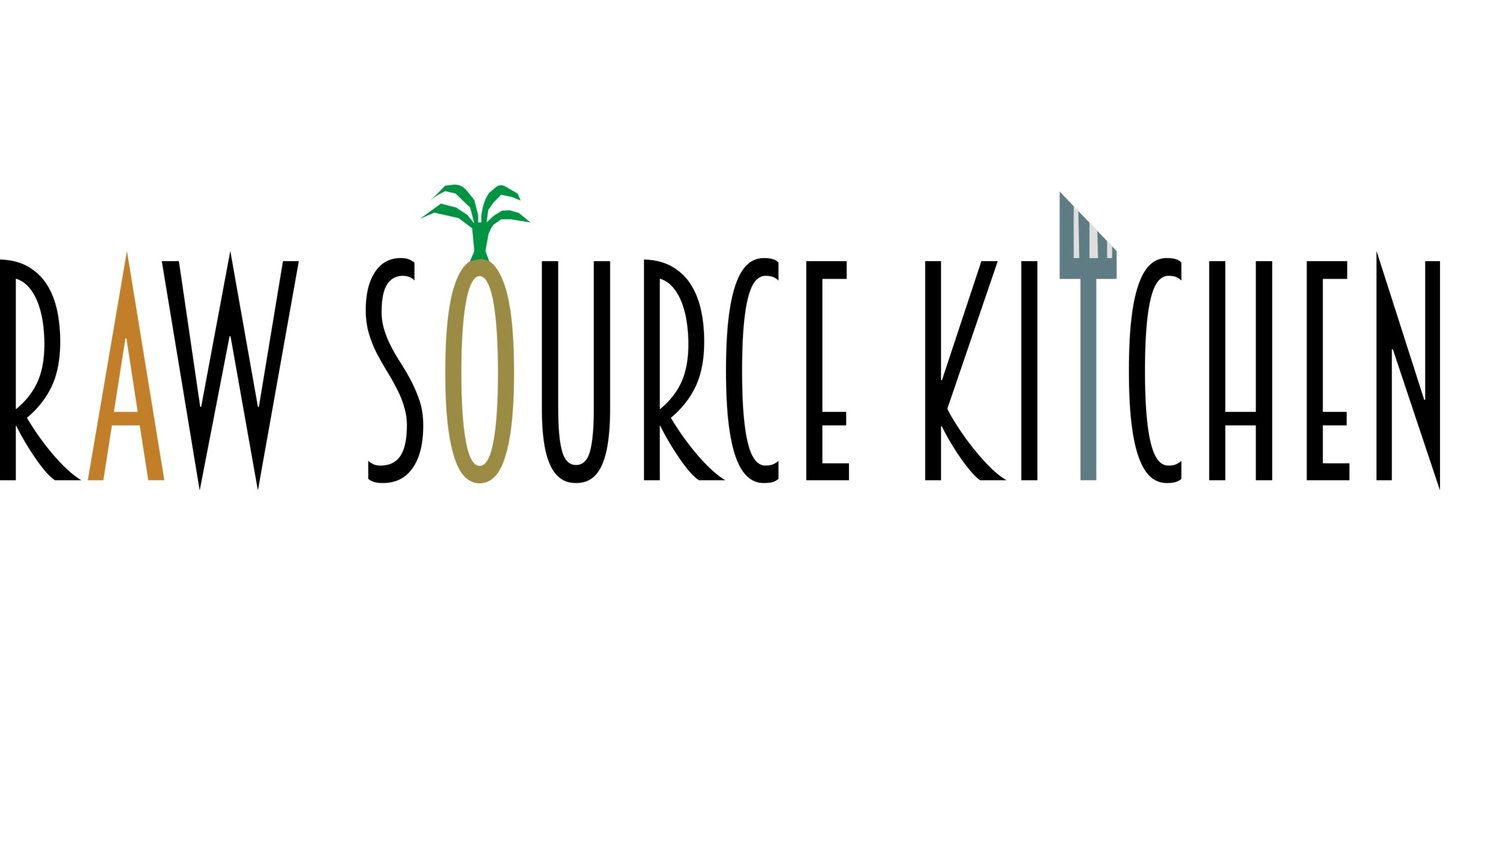 Raw source kitchen